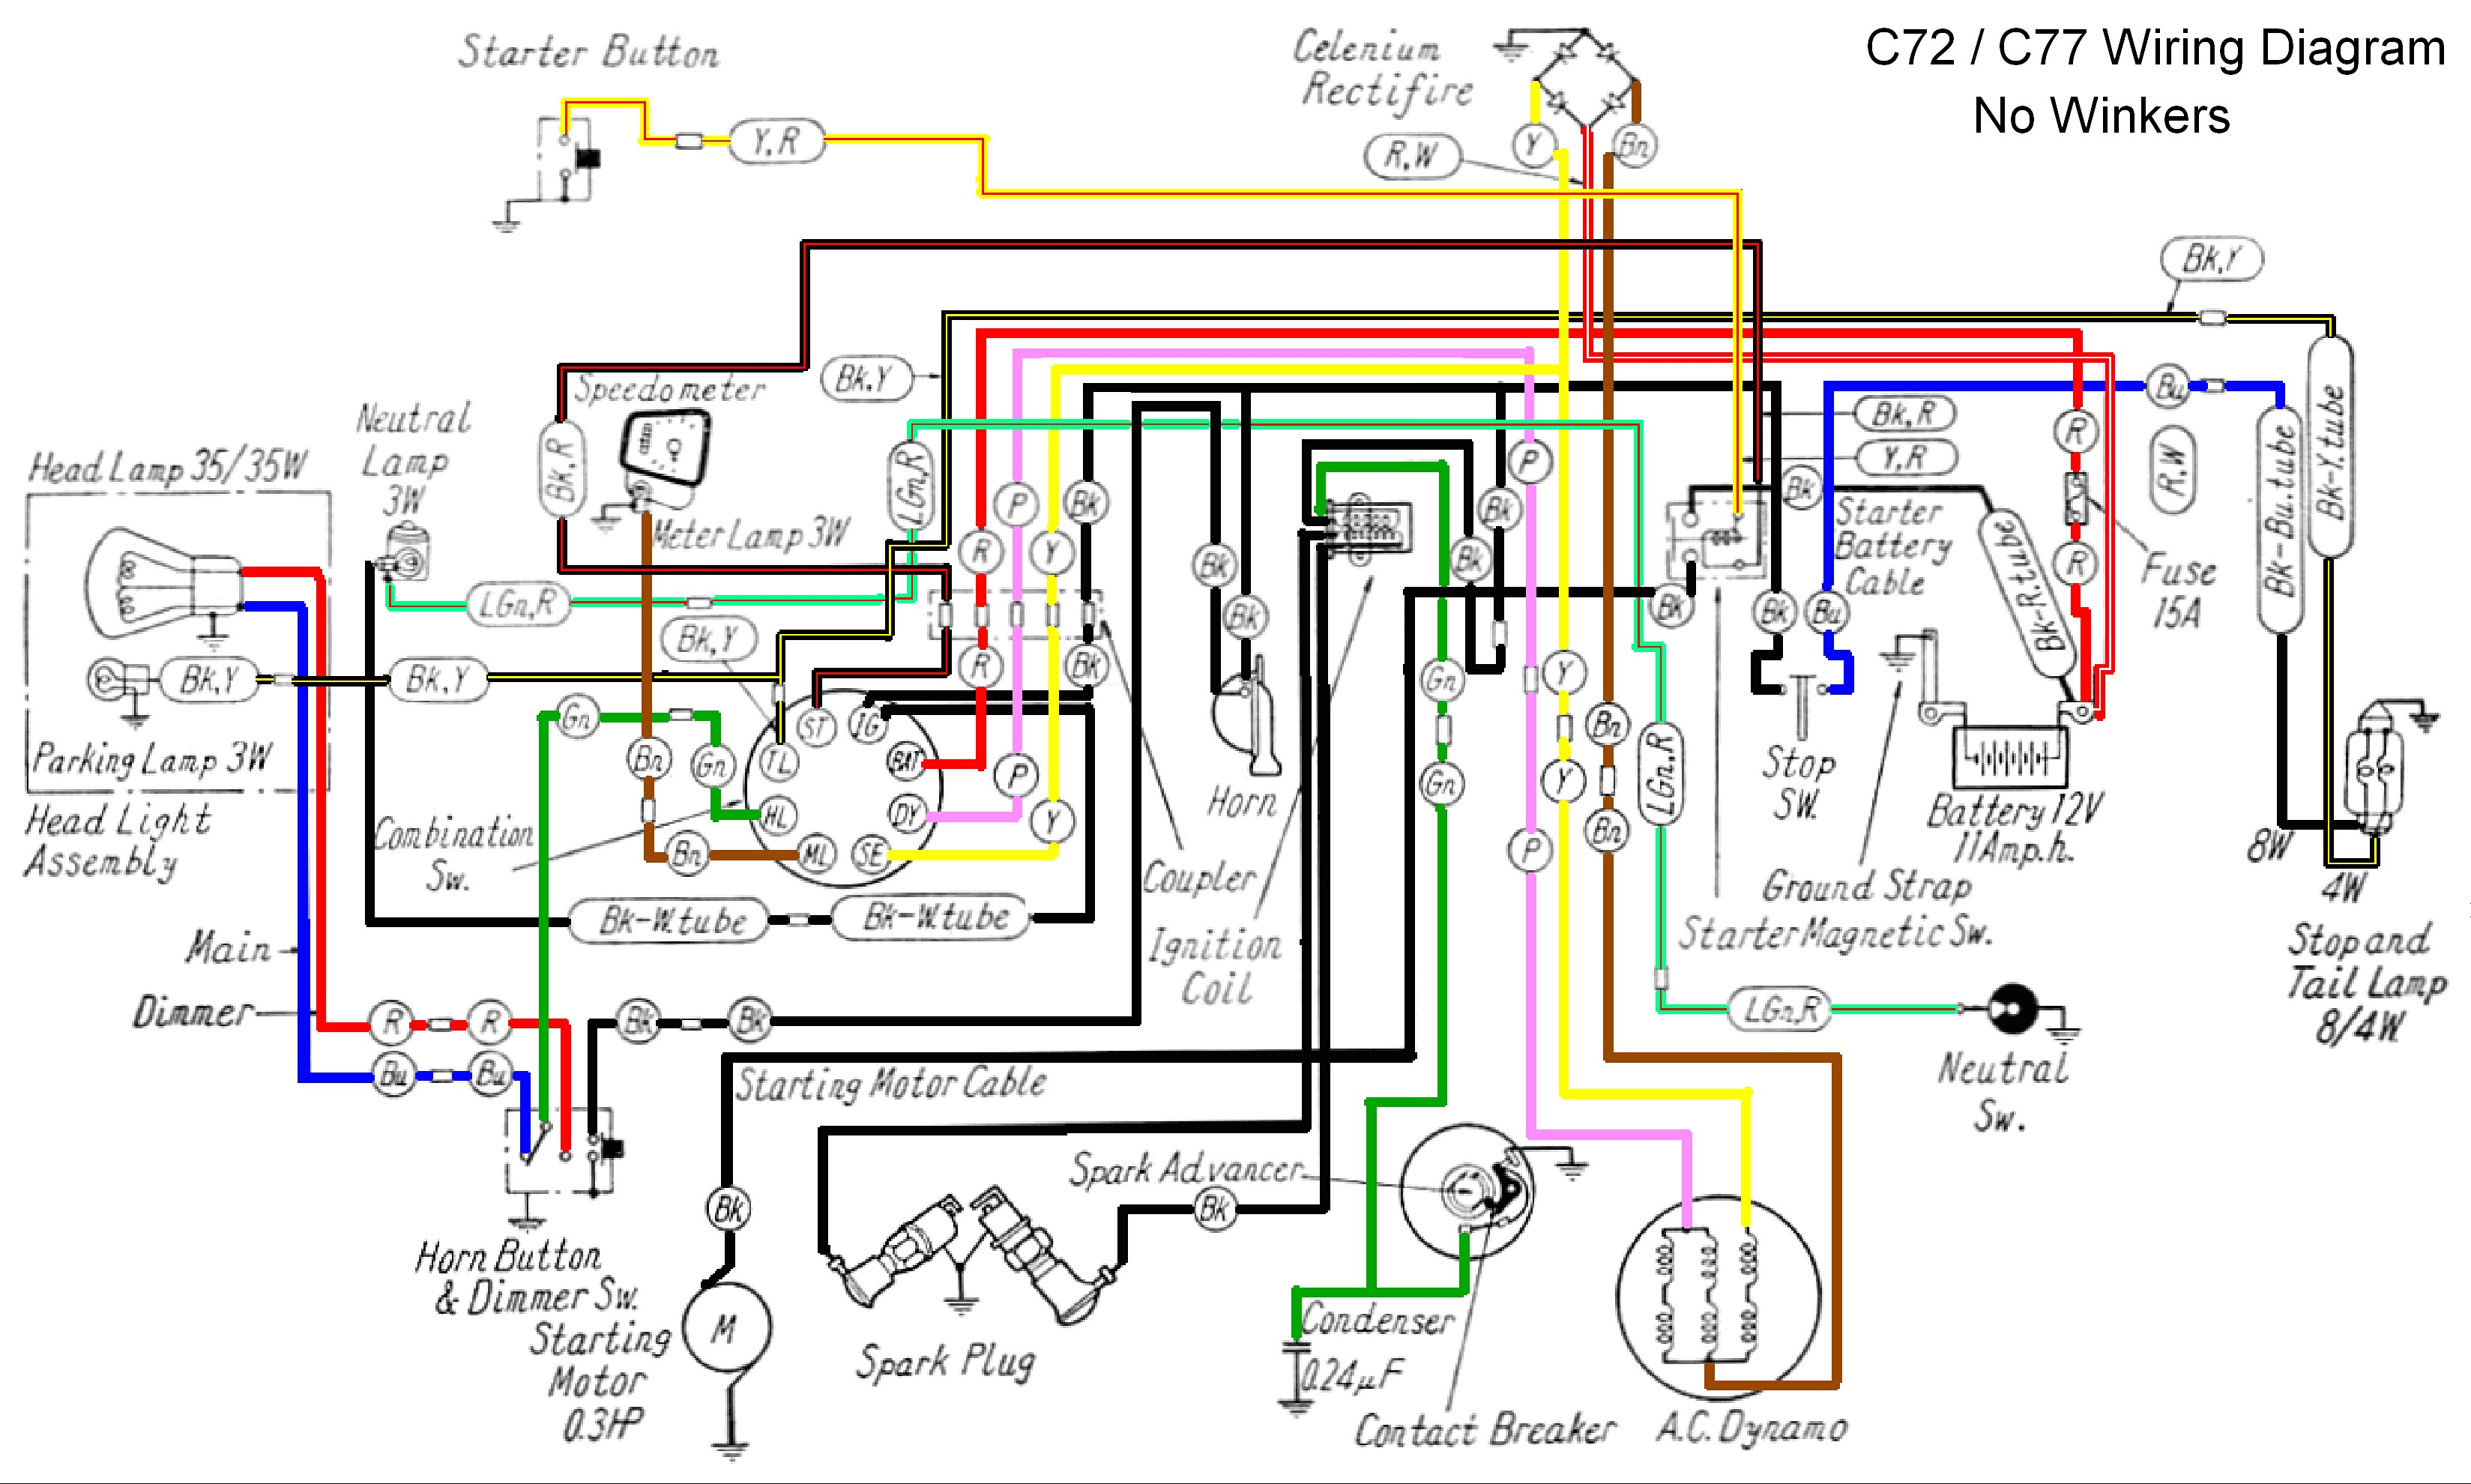 medium resolution of 883 2004 wiring diagram wiring library gmc fuse box diagrams harley wiring diagram for dummies detailed